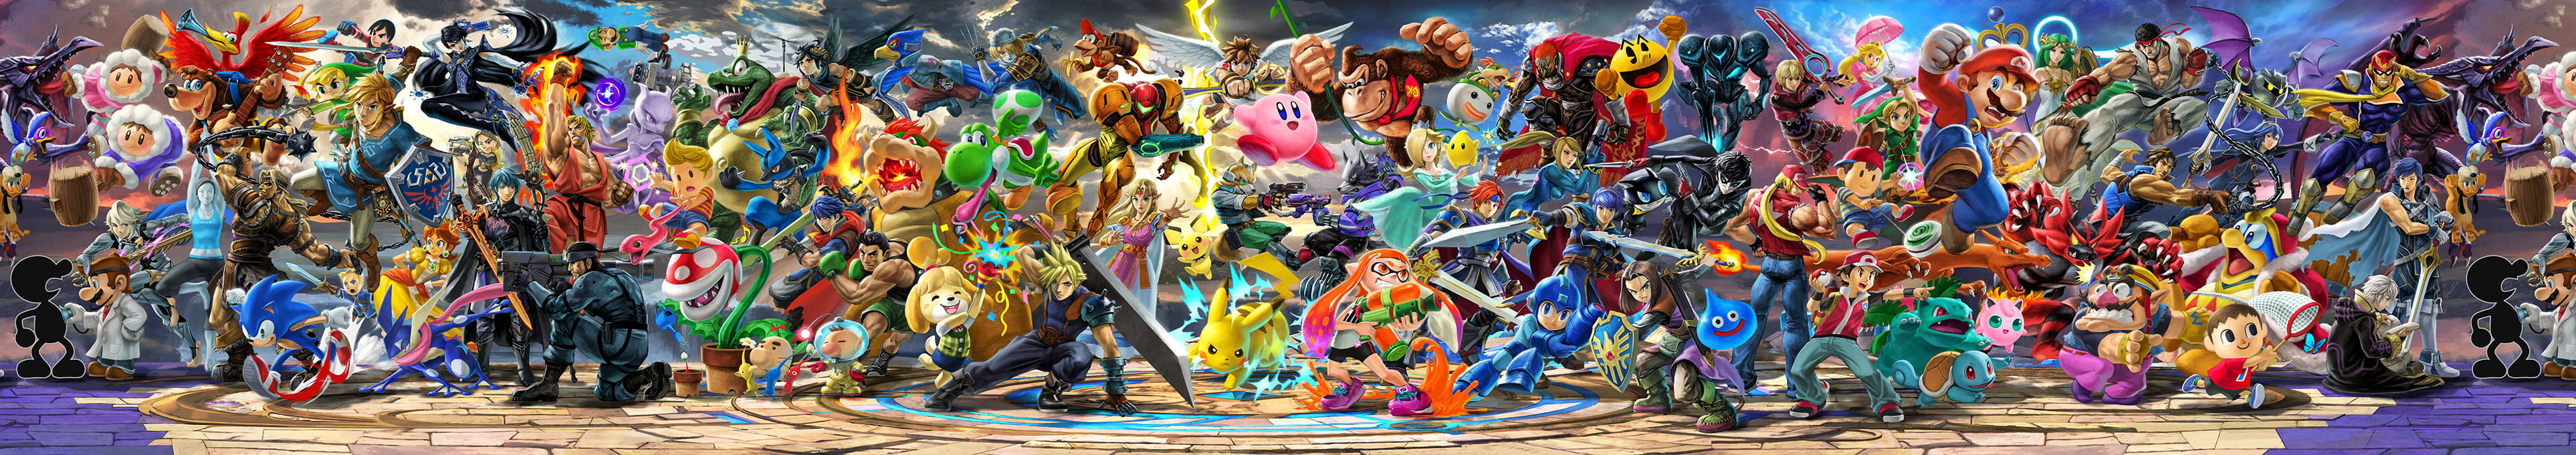 Super Smash Bros Ultimate Official Panoramic Art By Leafpenguins